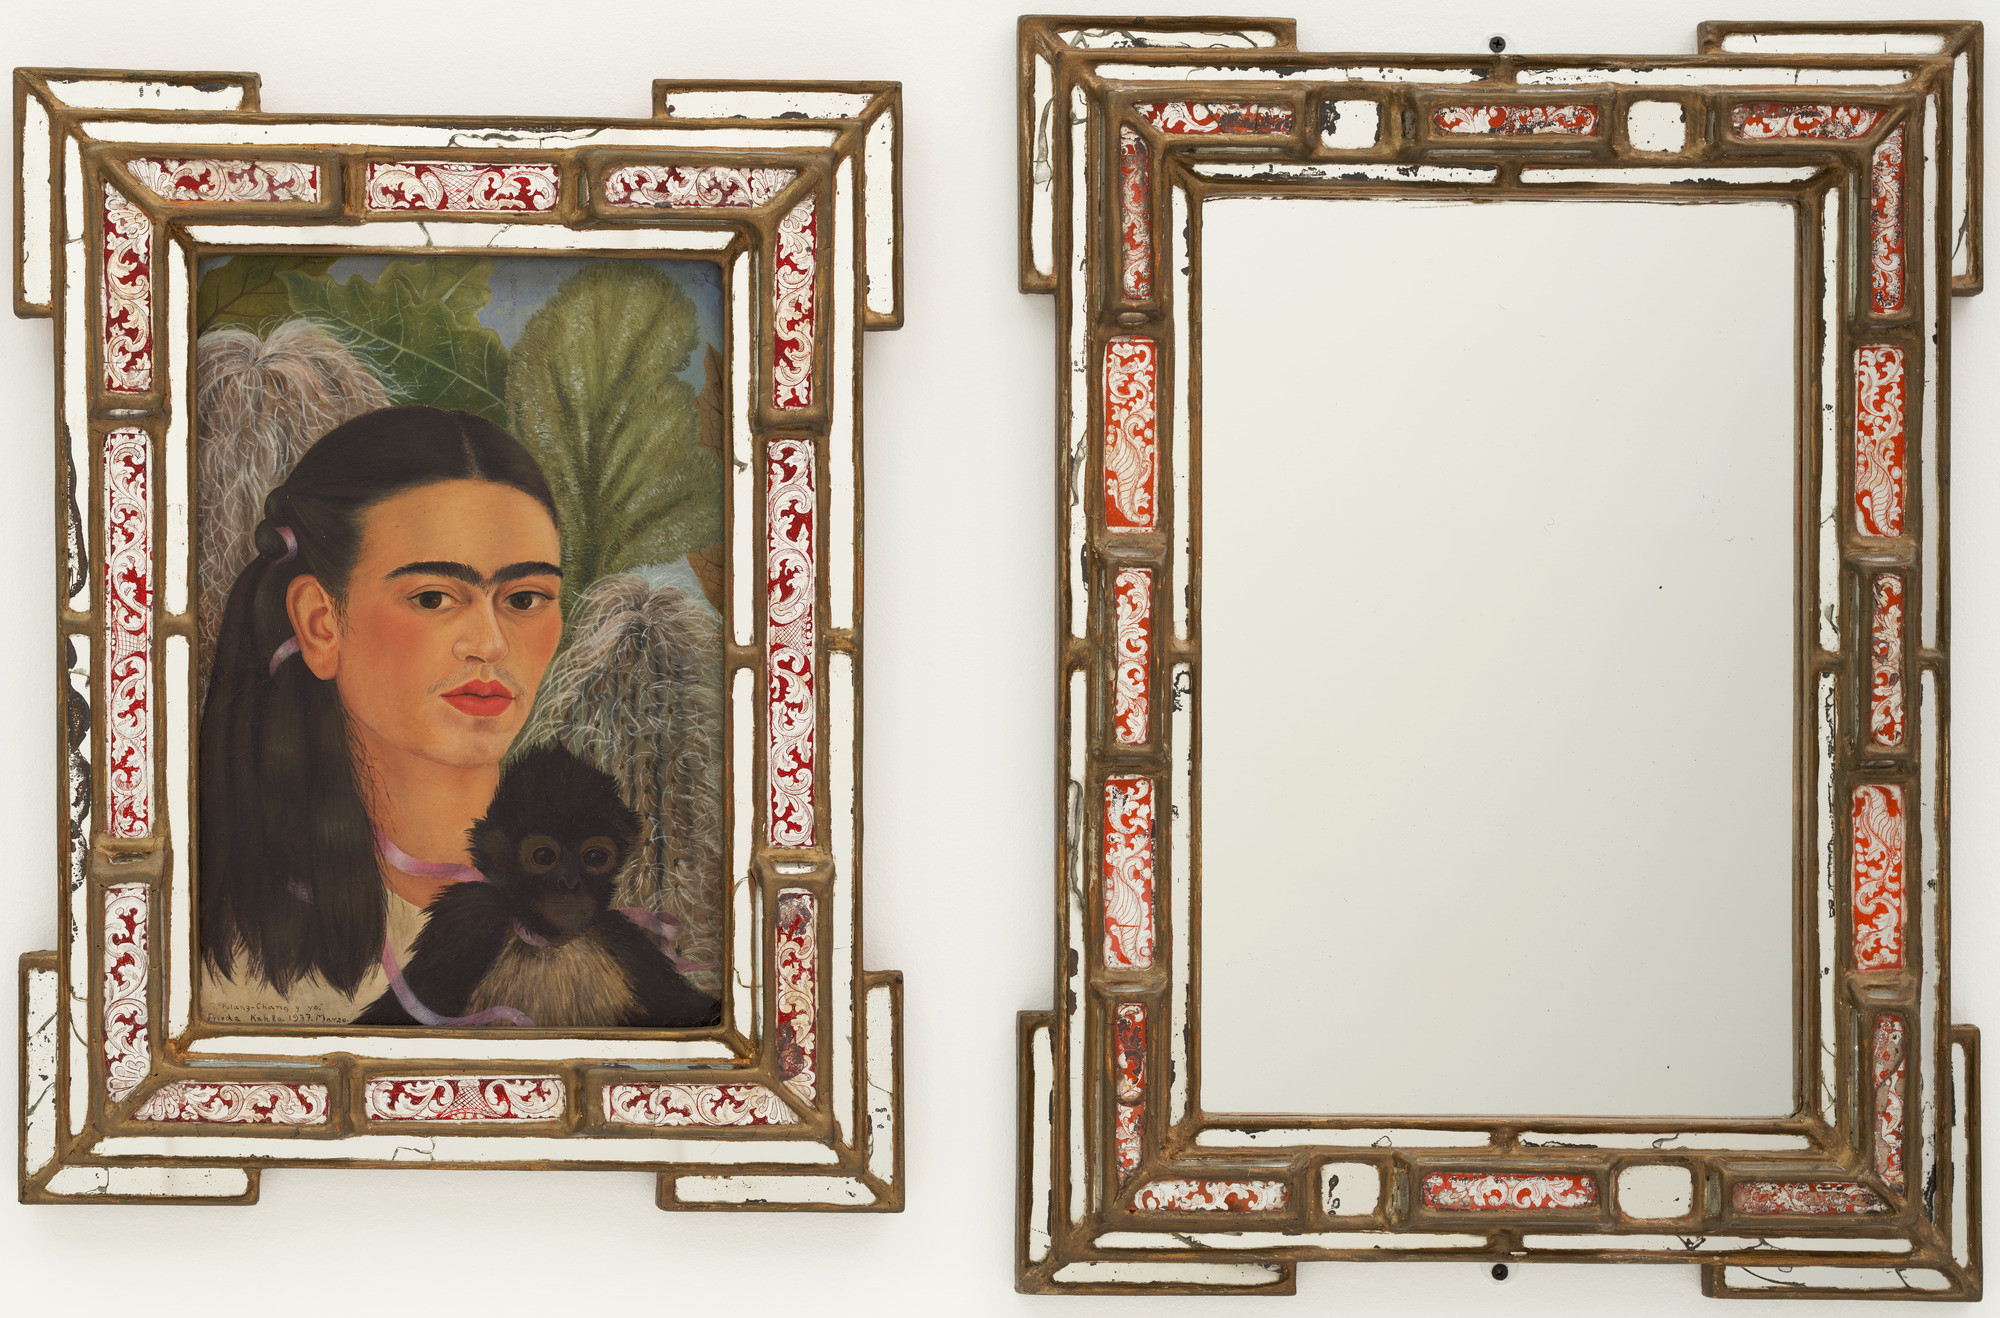 "Frida Kahlo. Fulang-Chang and I. 1937 (assembled after 1939). In two parts, oil on composition board (1937) with painted mirror frame (added after 1939); and mirror with painted mirror frame (after 1939), framed painting, left 22 1/4 x 17 3/8 x 1 3/4"" (56.5 x 44.1 x 4.4 cm); framed mirror, right 25 1/4 x 19 x 1 3/4"" (64.1 x 48.3 x 4.4 cm). Mary Sklar Bequest. © 2019 Banco de México Diego Rivera Frida Kahlo Museums Trust, Mexico, D.F./Artists Rights Society (ARS), New York"